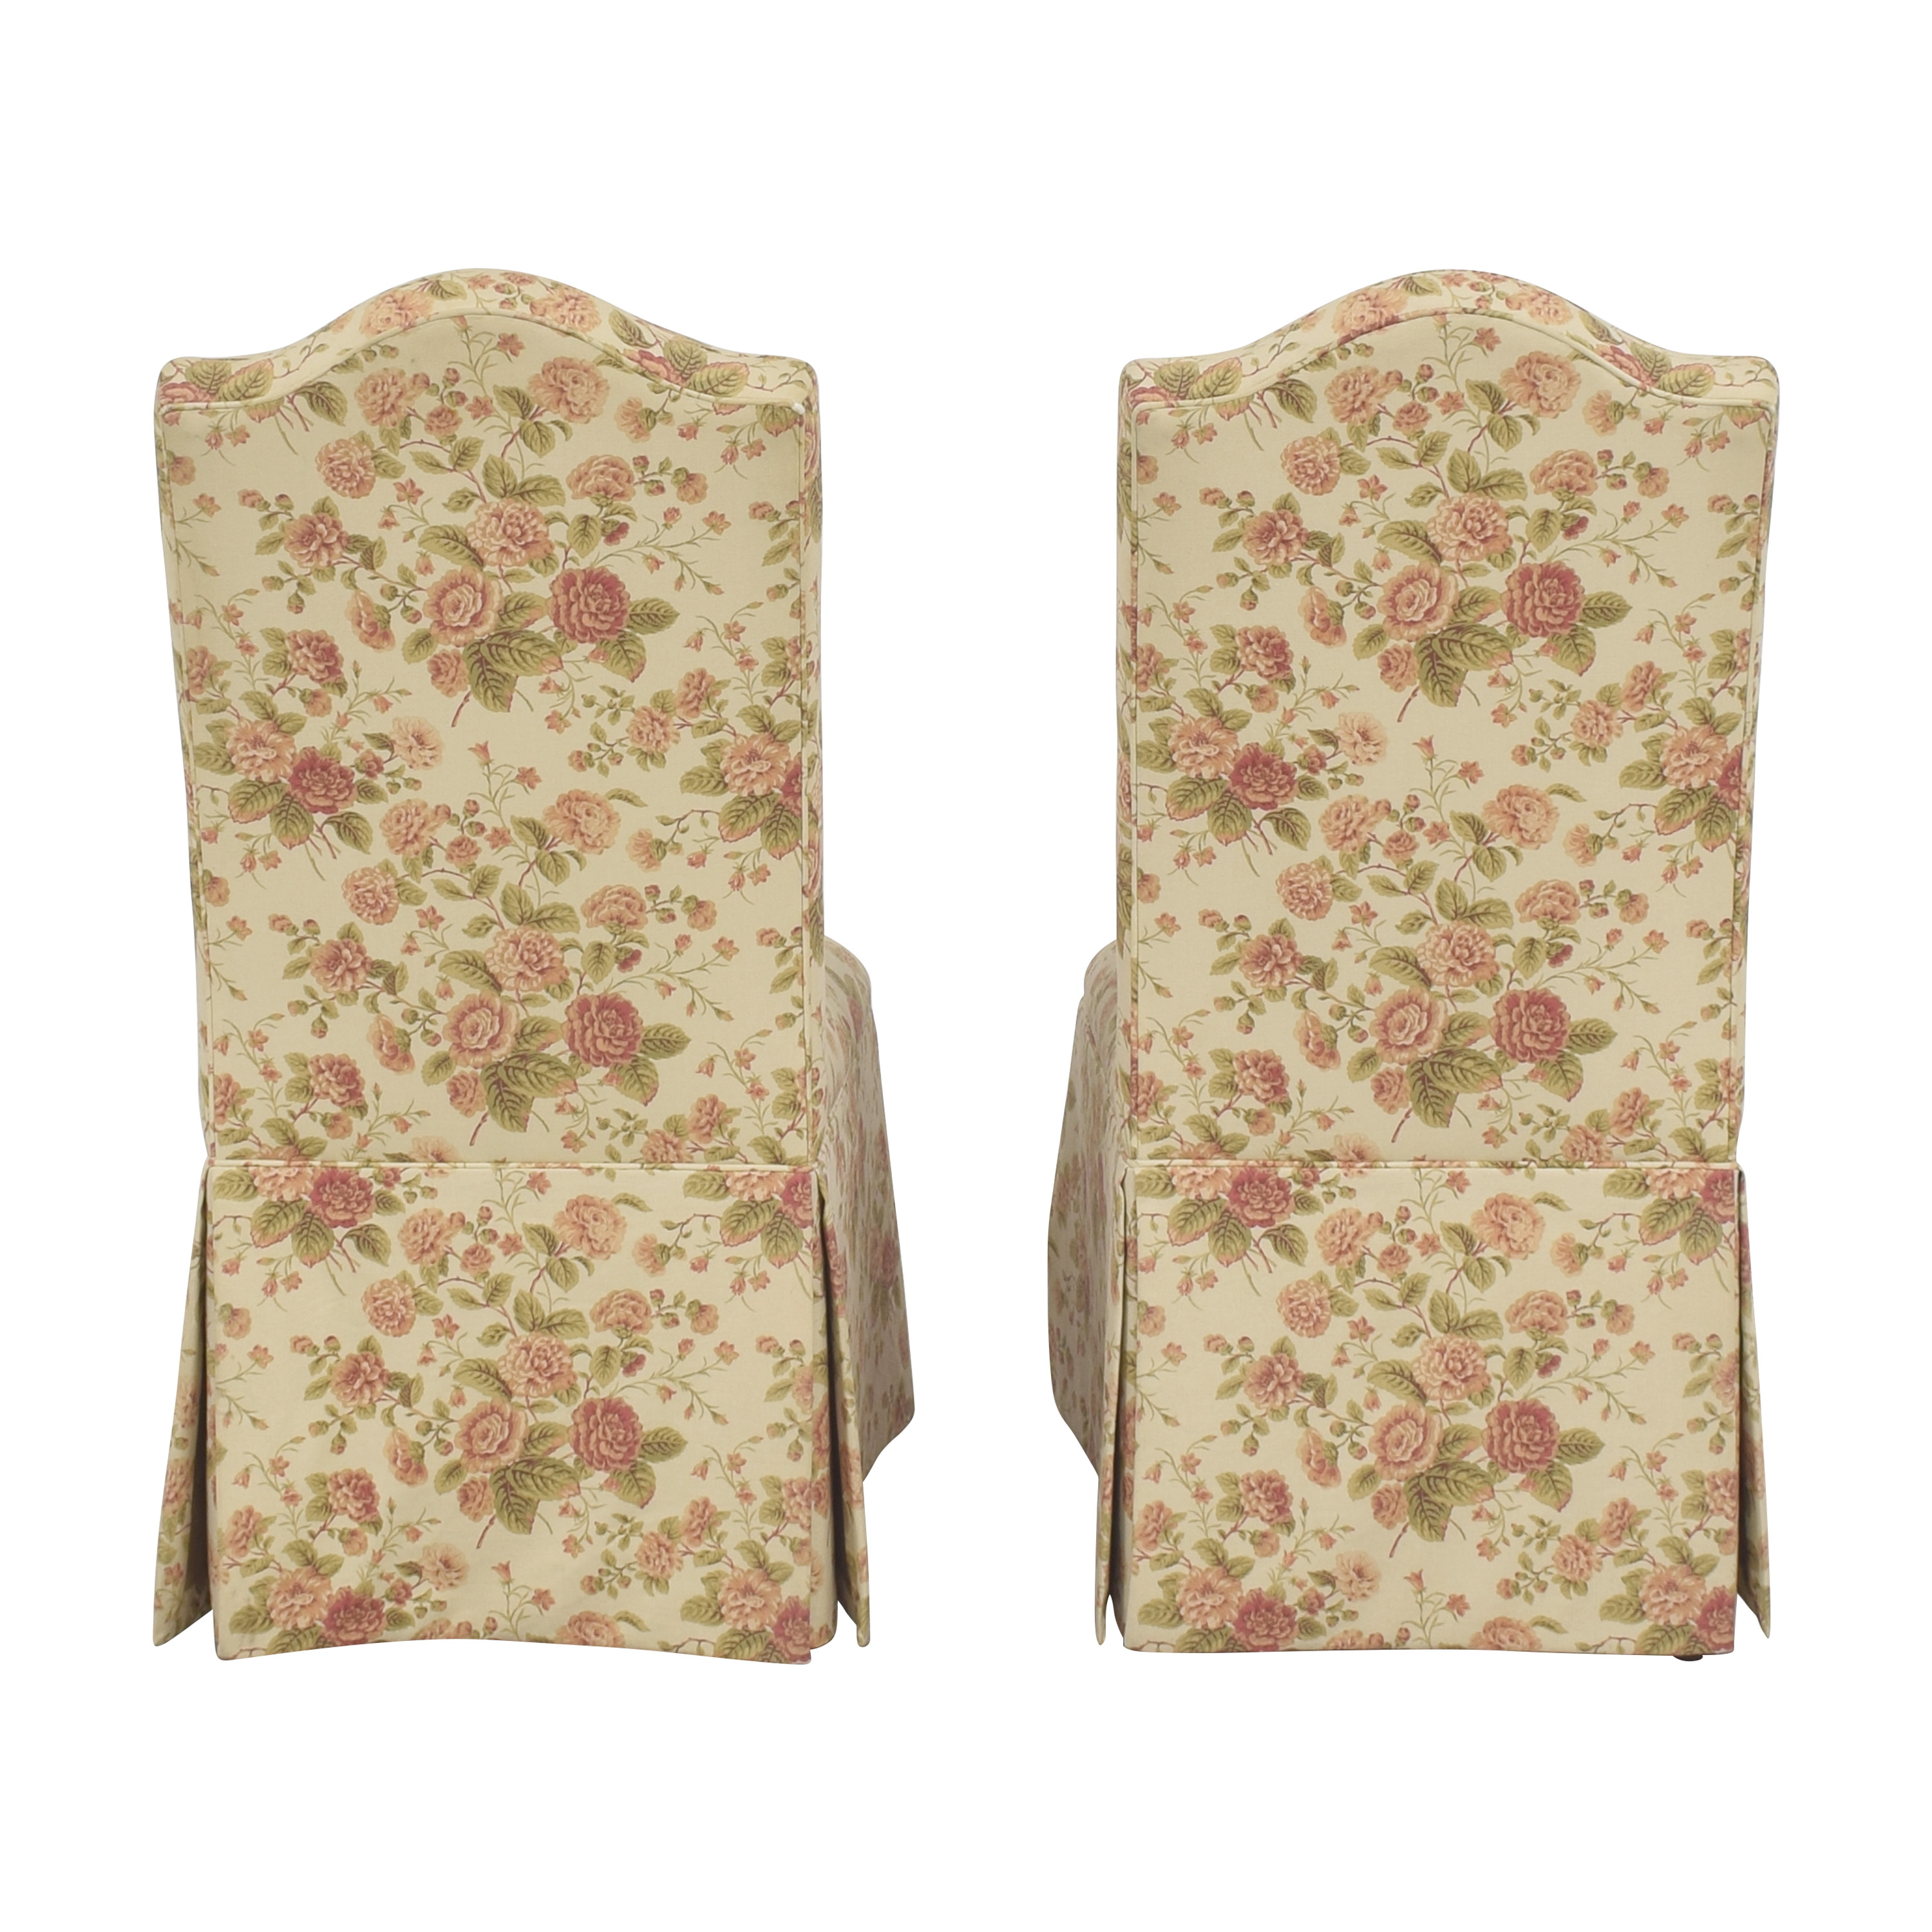 Ethan Allen Olivia Dining Chairs / Dining Chairs